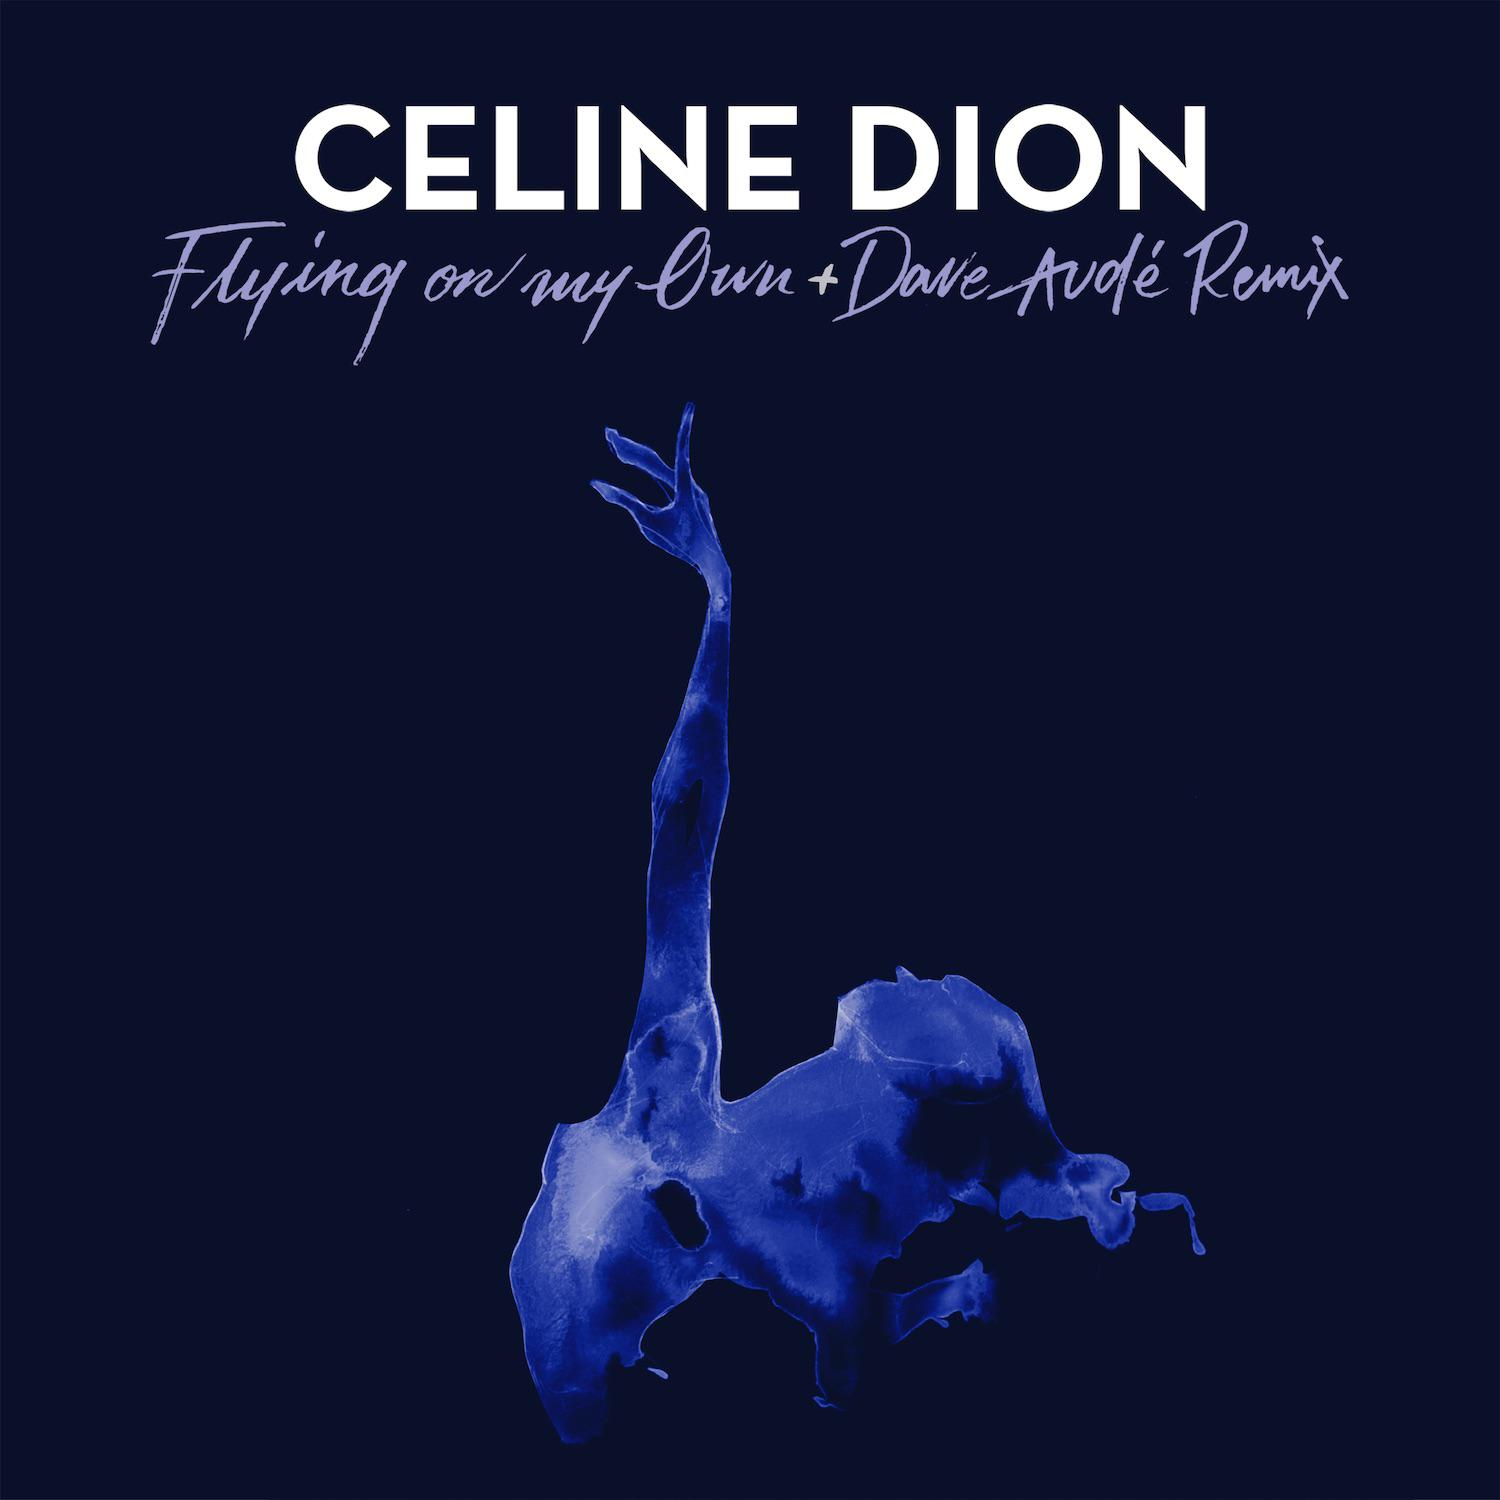 Celine Dion - Flying On My Own (Dave Audé Remix)